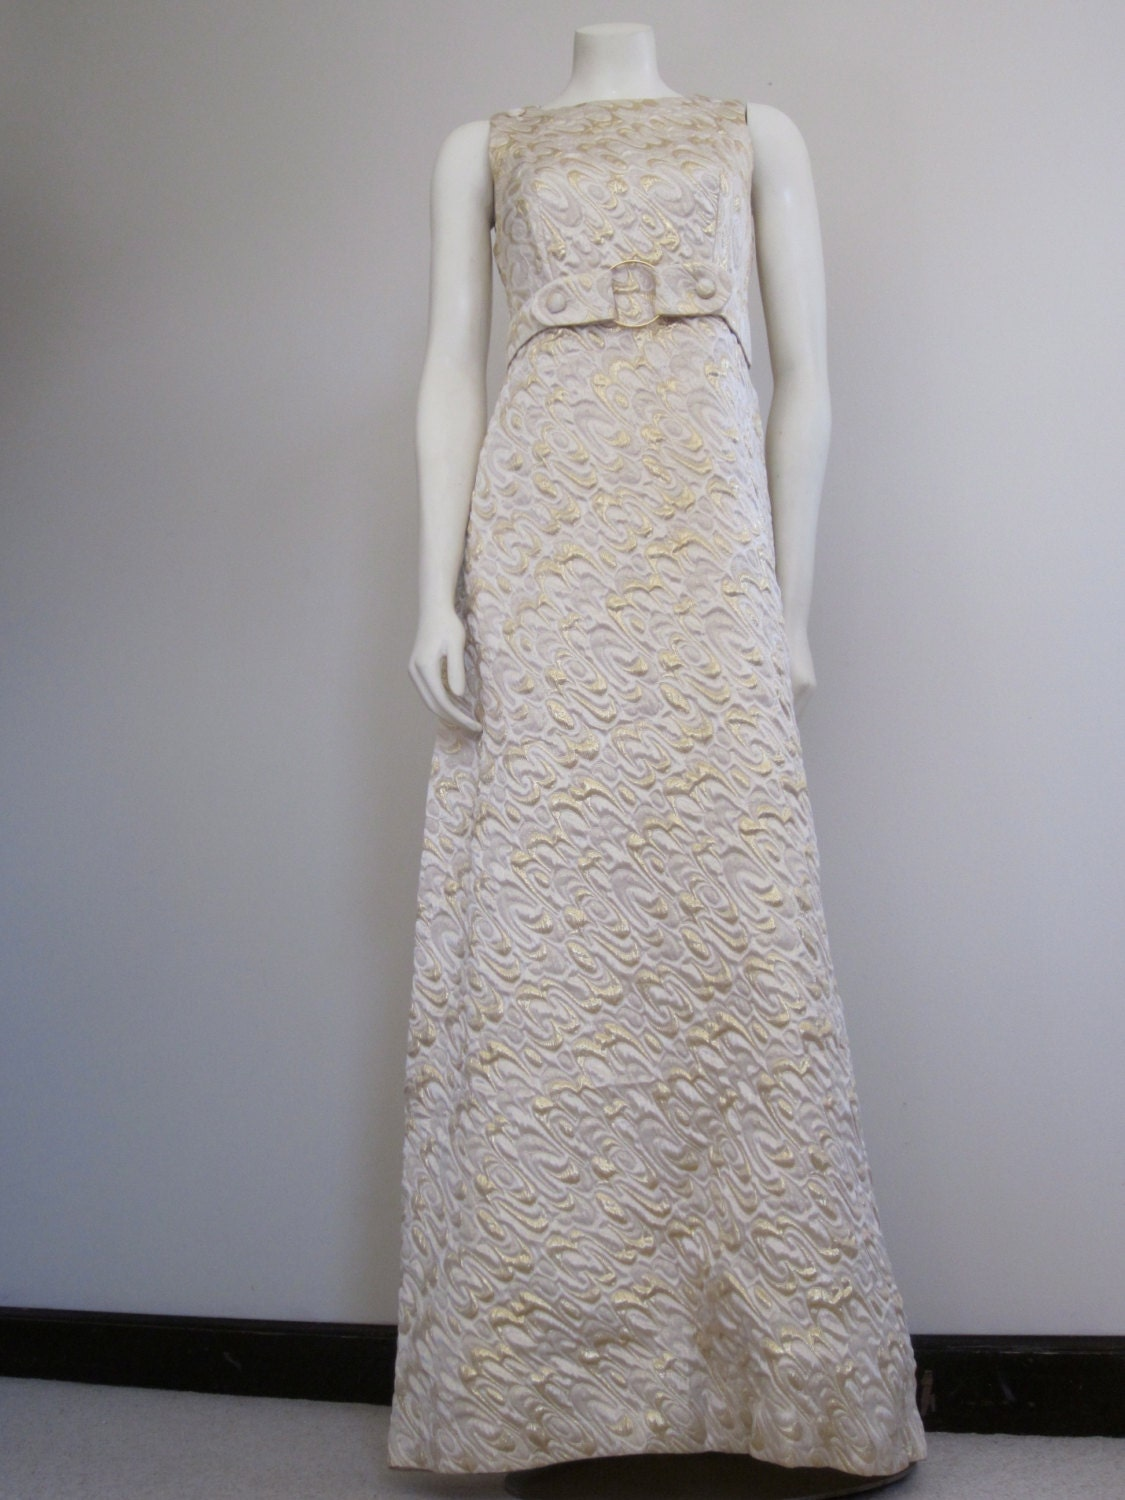 Images of Jackie Kennedy Evening Dresses - #SpaceHero